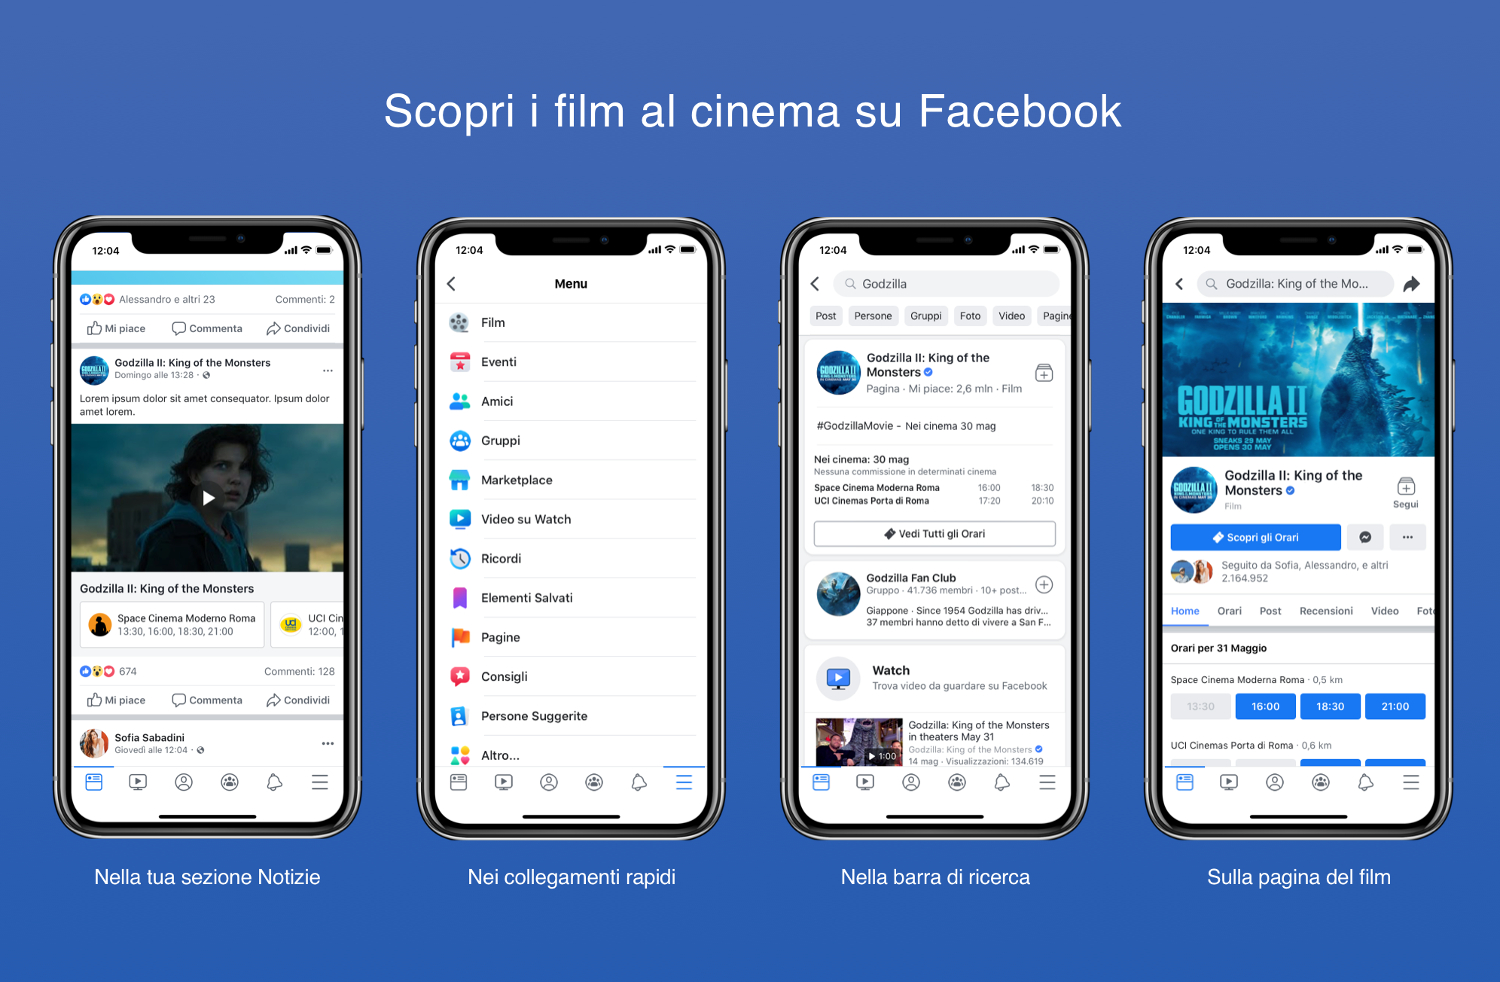 Facebook Film arriva in Italia